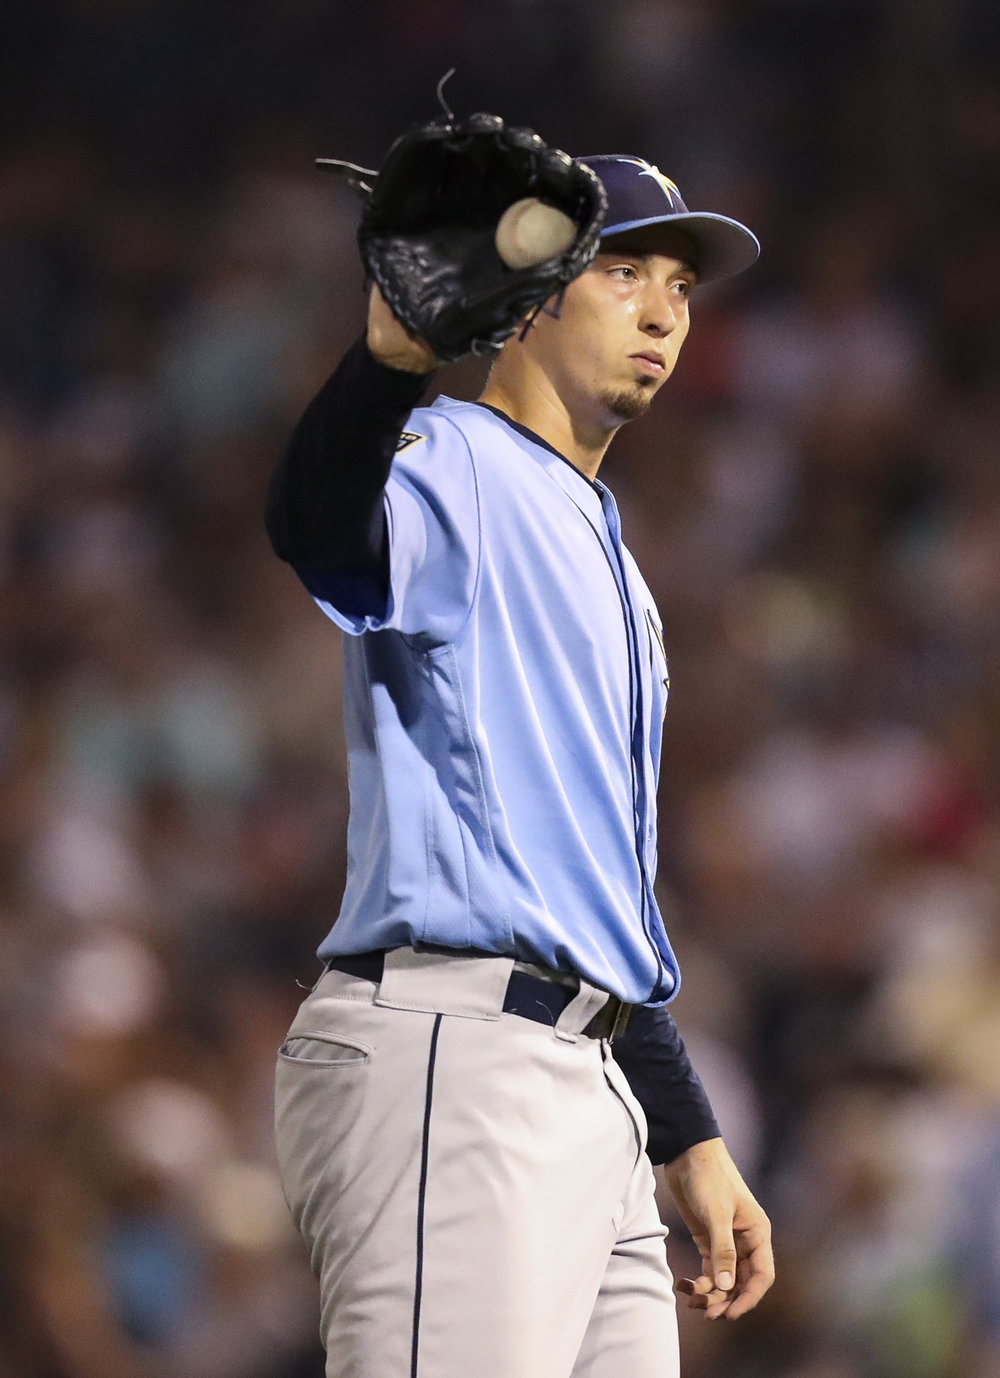 MONICA HERNDON   |   TimesBlake Snell (4), of the Tampa Bay Rays, pitches during the fifth inning of a spring training game against the Yankees on March 19, 2018, at Steinbrenner Field in Tampa, Fla.